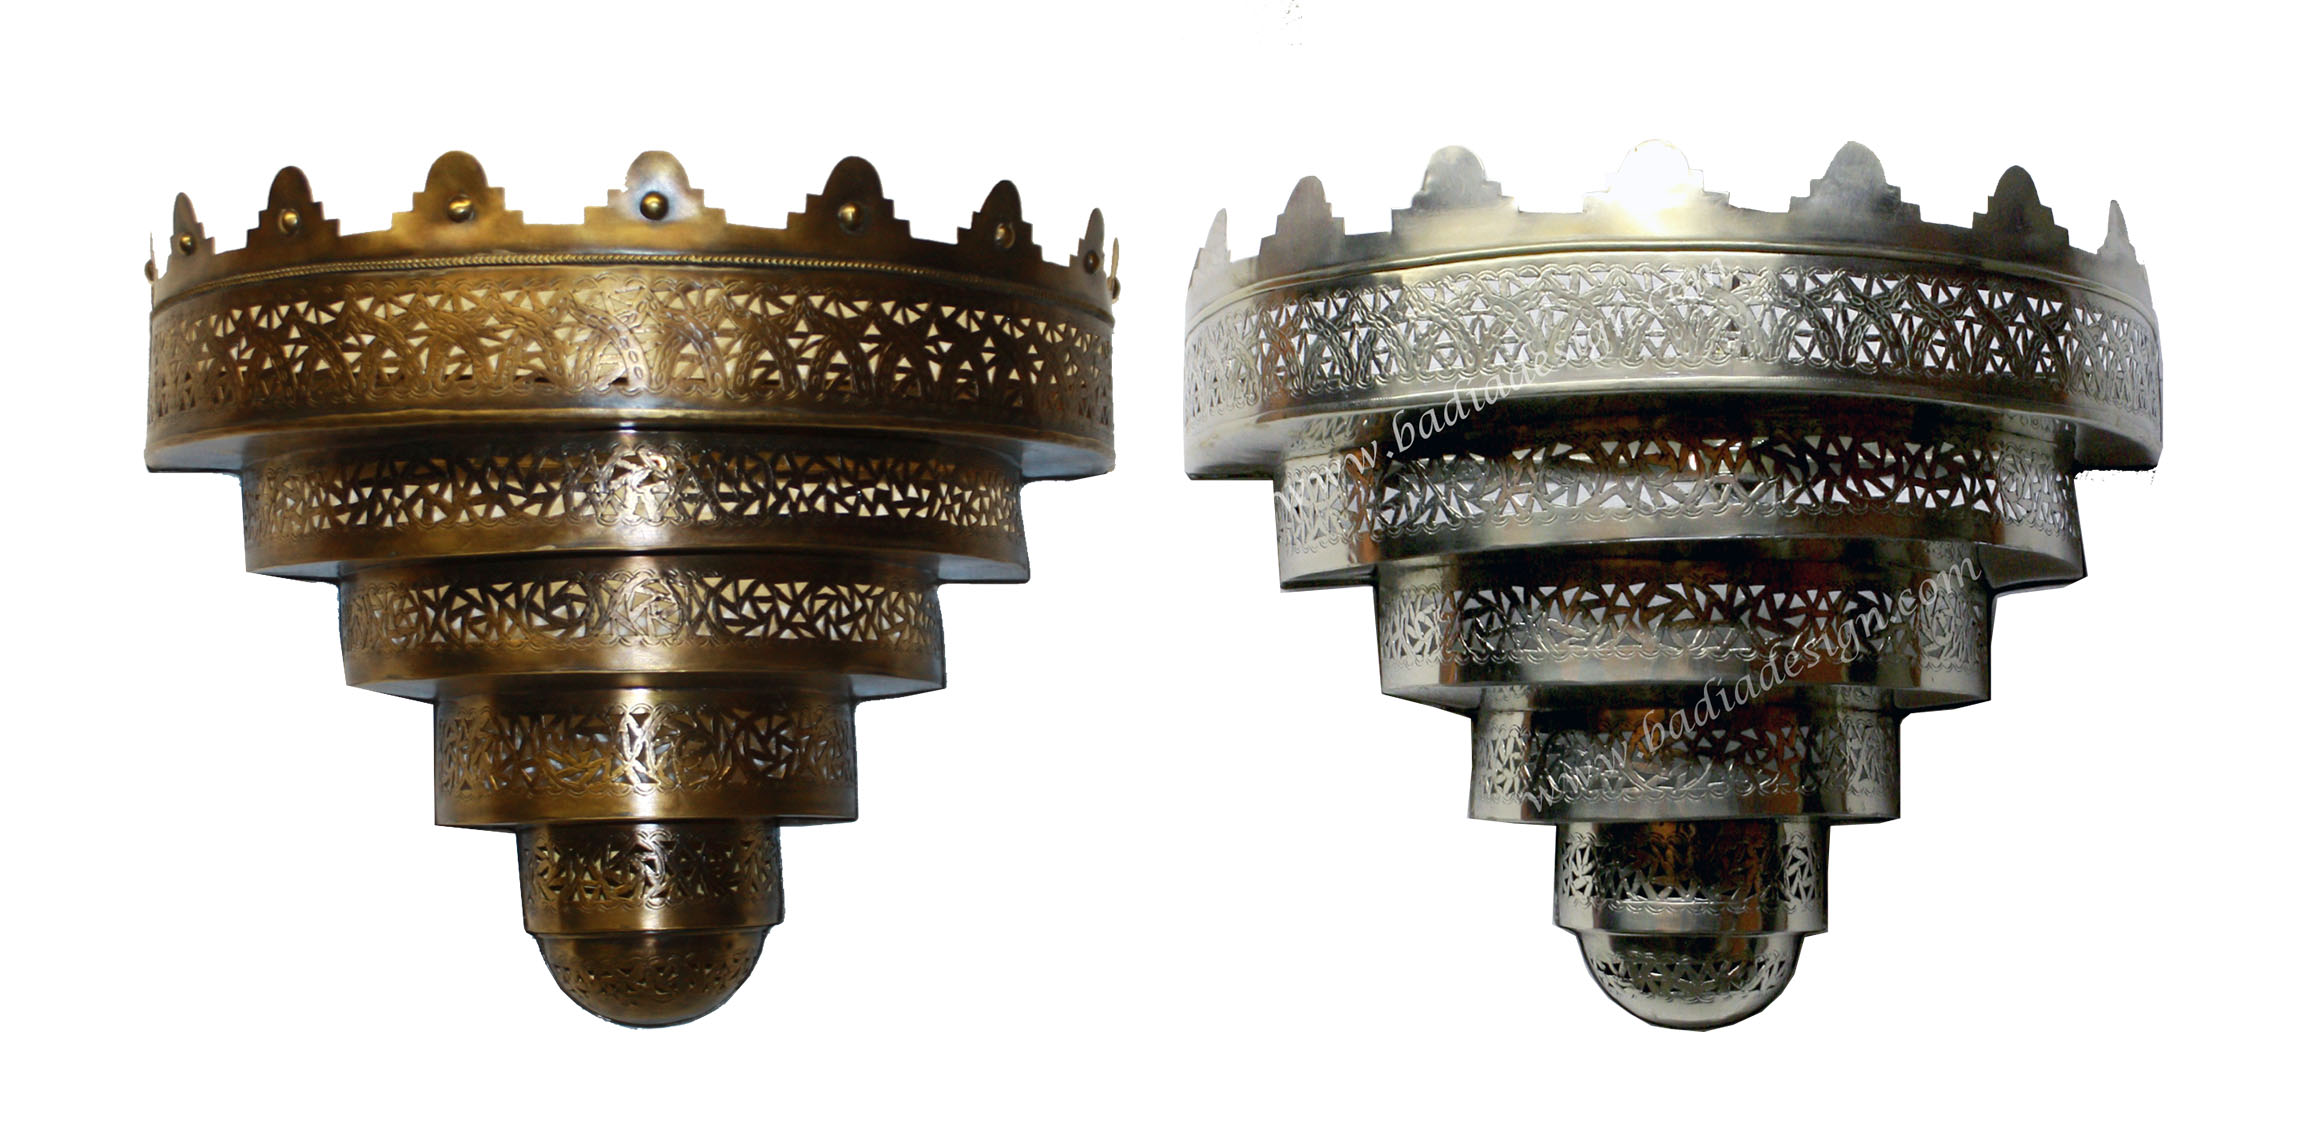 Moroccan Brass and Silver Wall Sconce